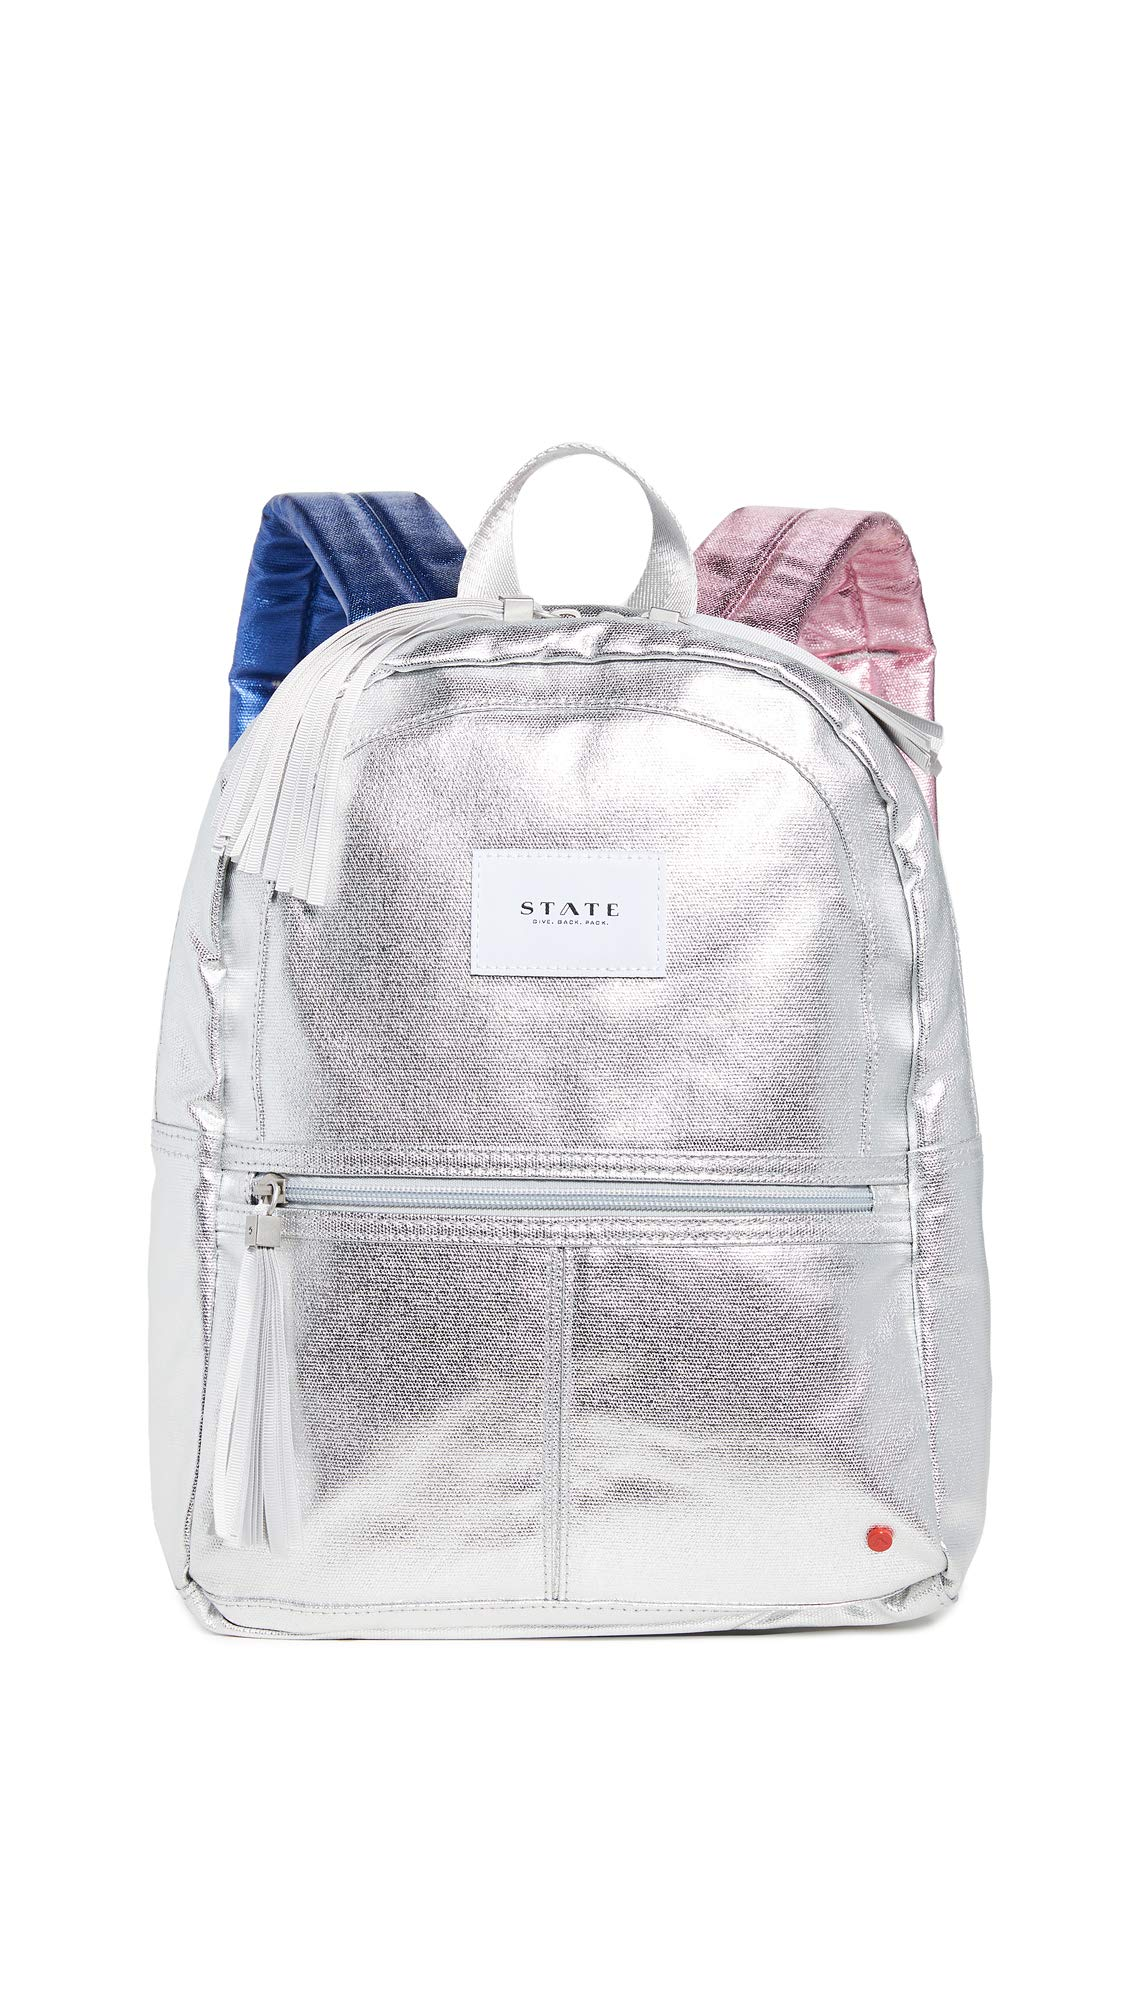 STATE Women's Mini Kane Backpack, Silver/Multi, One Size by STATE Bags